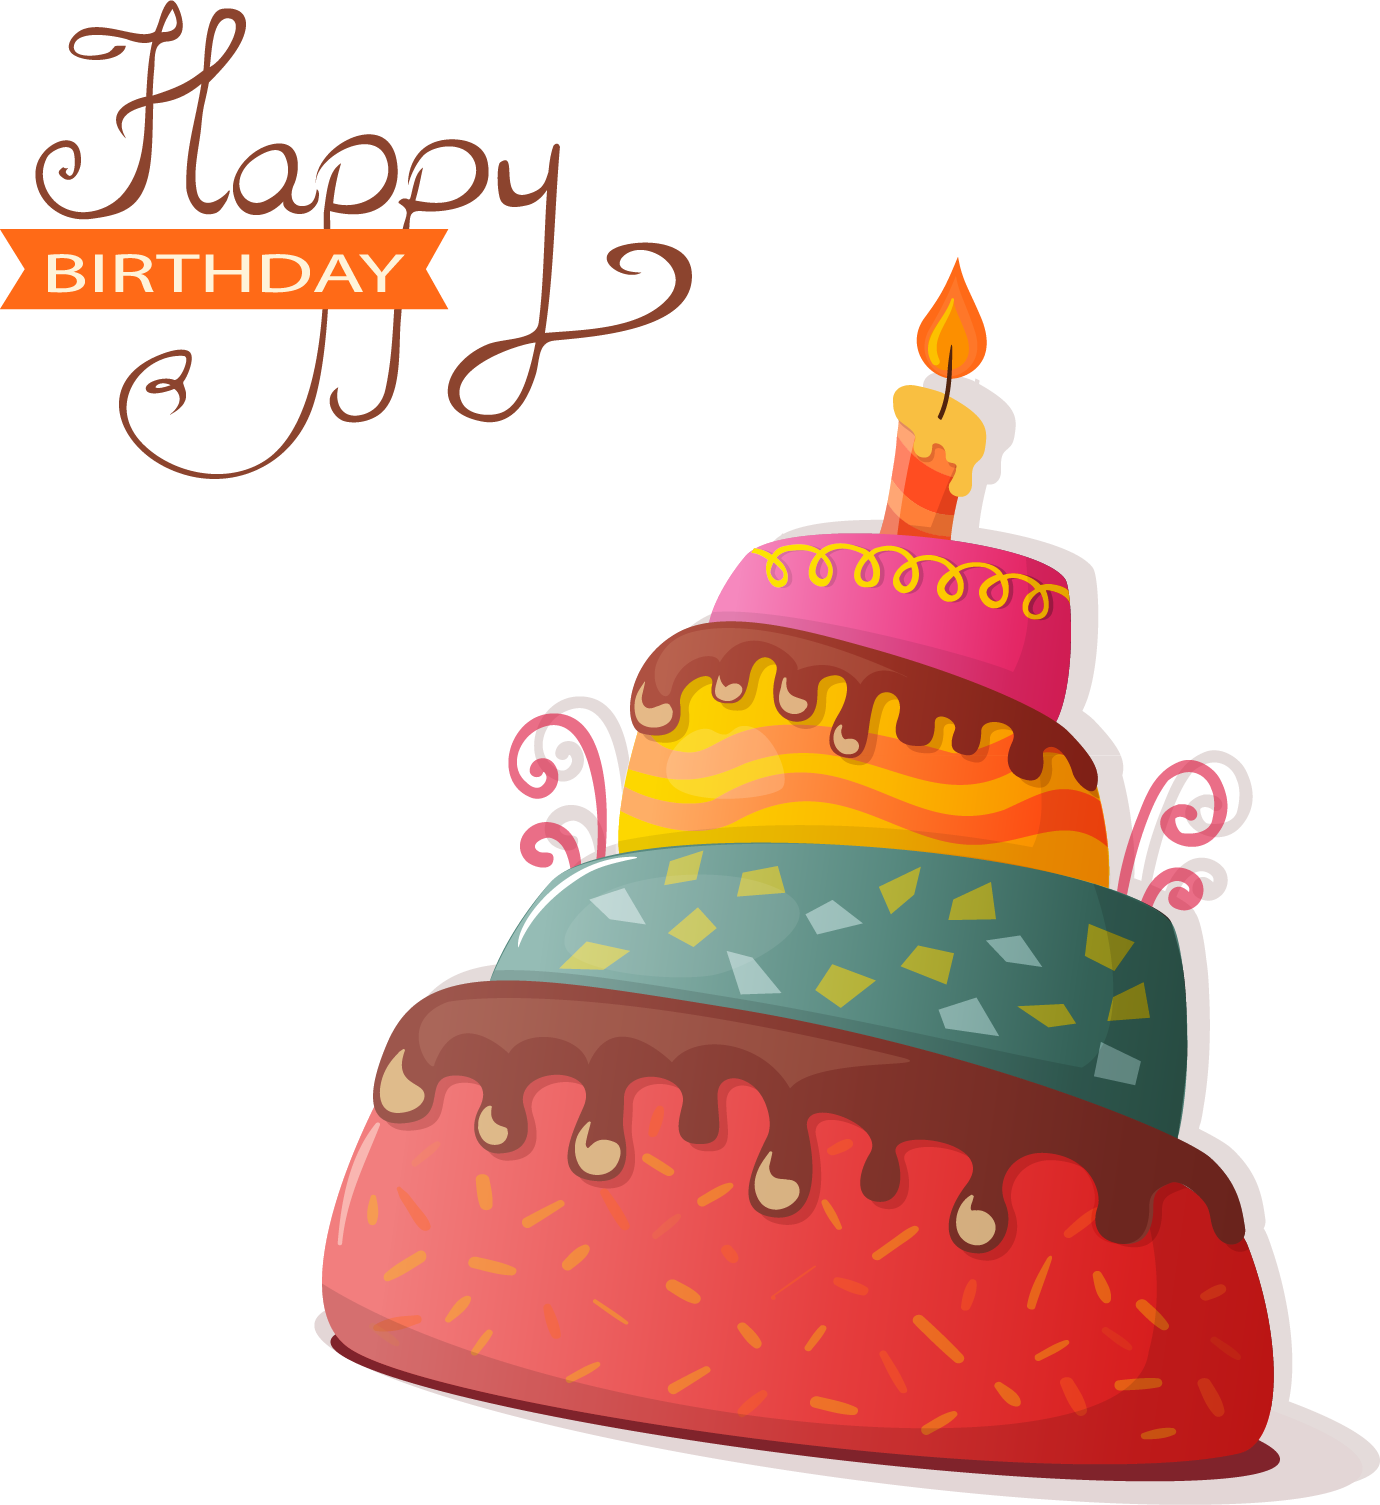 Cake Birthday Free Download Image PNG Image